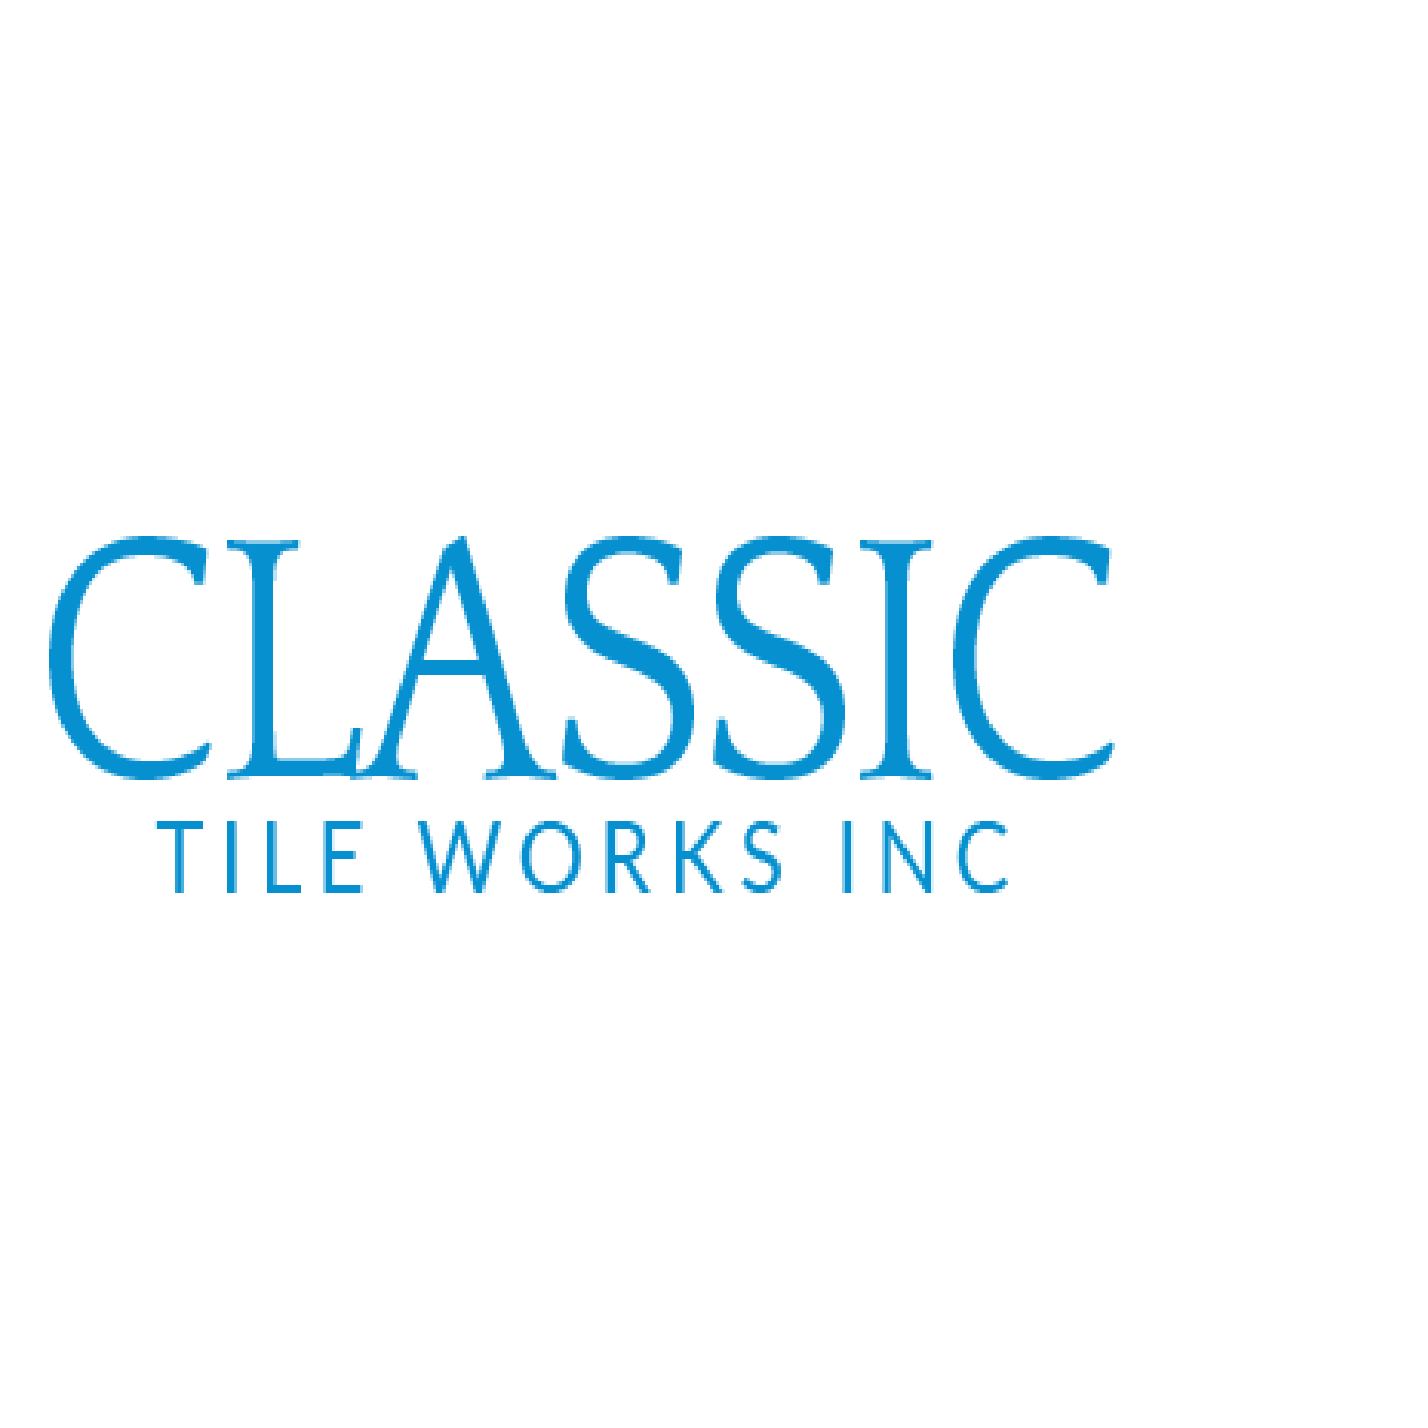 Classic Tile Works Inc